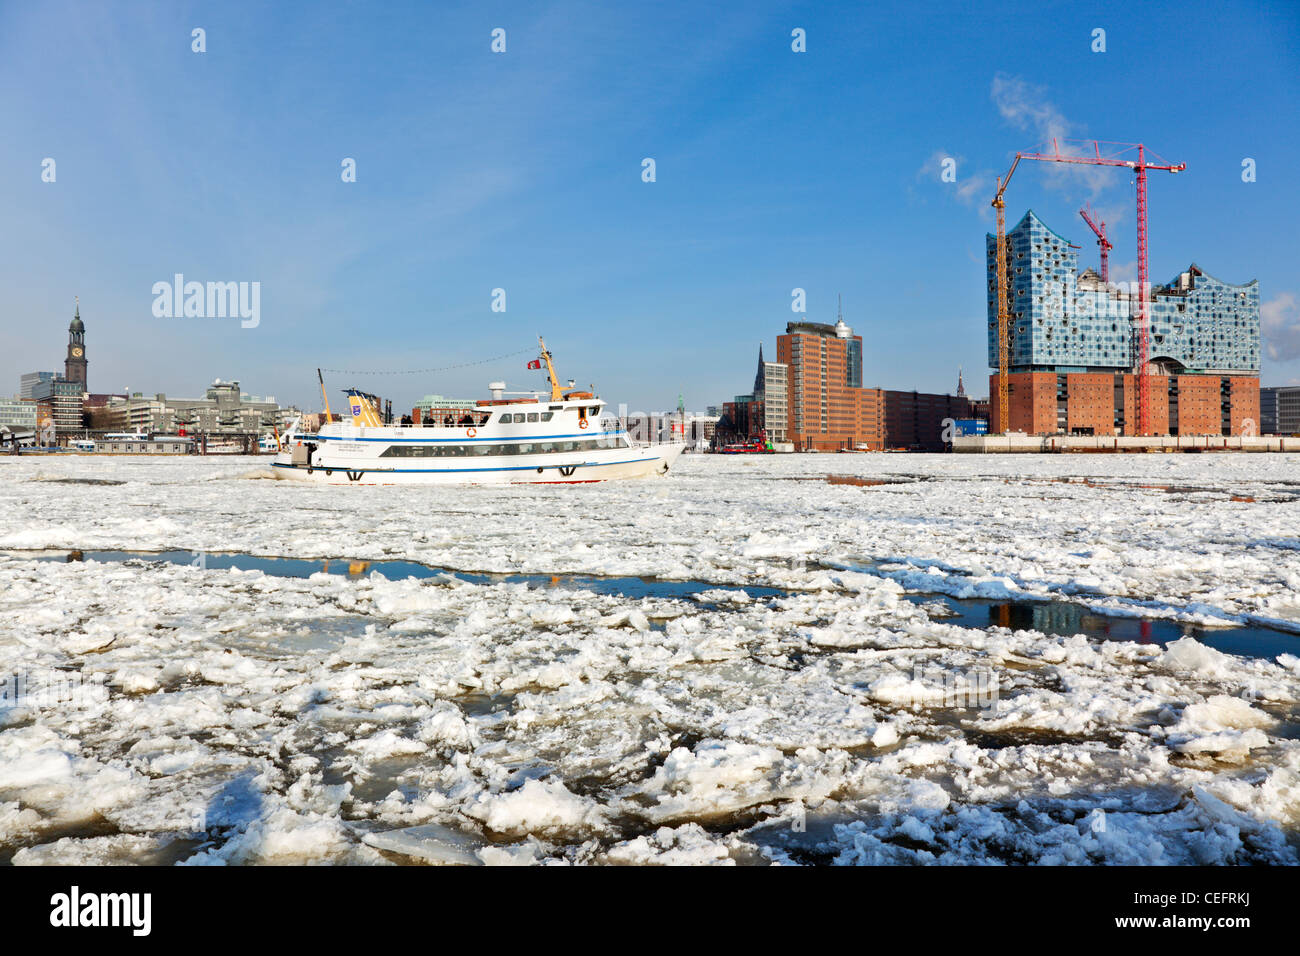 Hamburg and the frozen Elbe river from Saint Michaels church to the Elbphilharmonie construction site, tourist boat - Stock Image